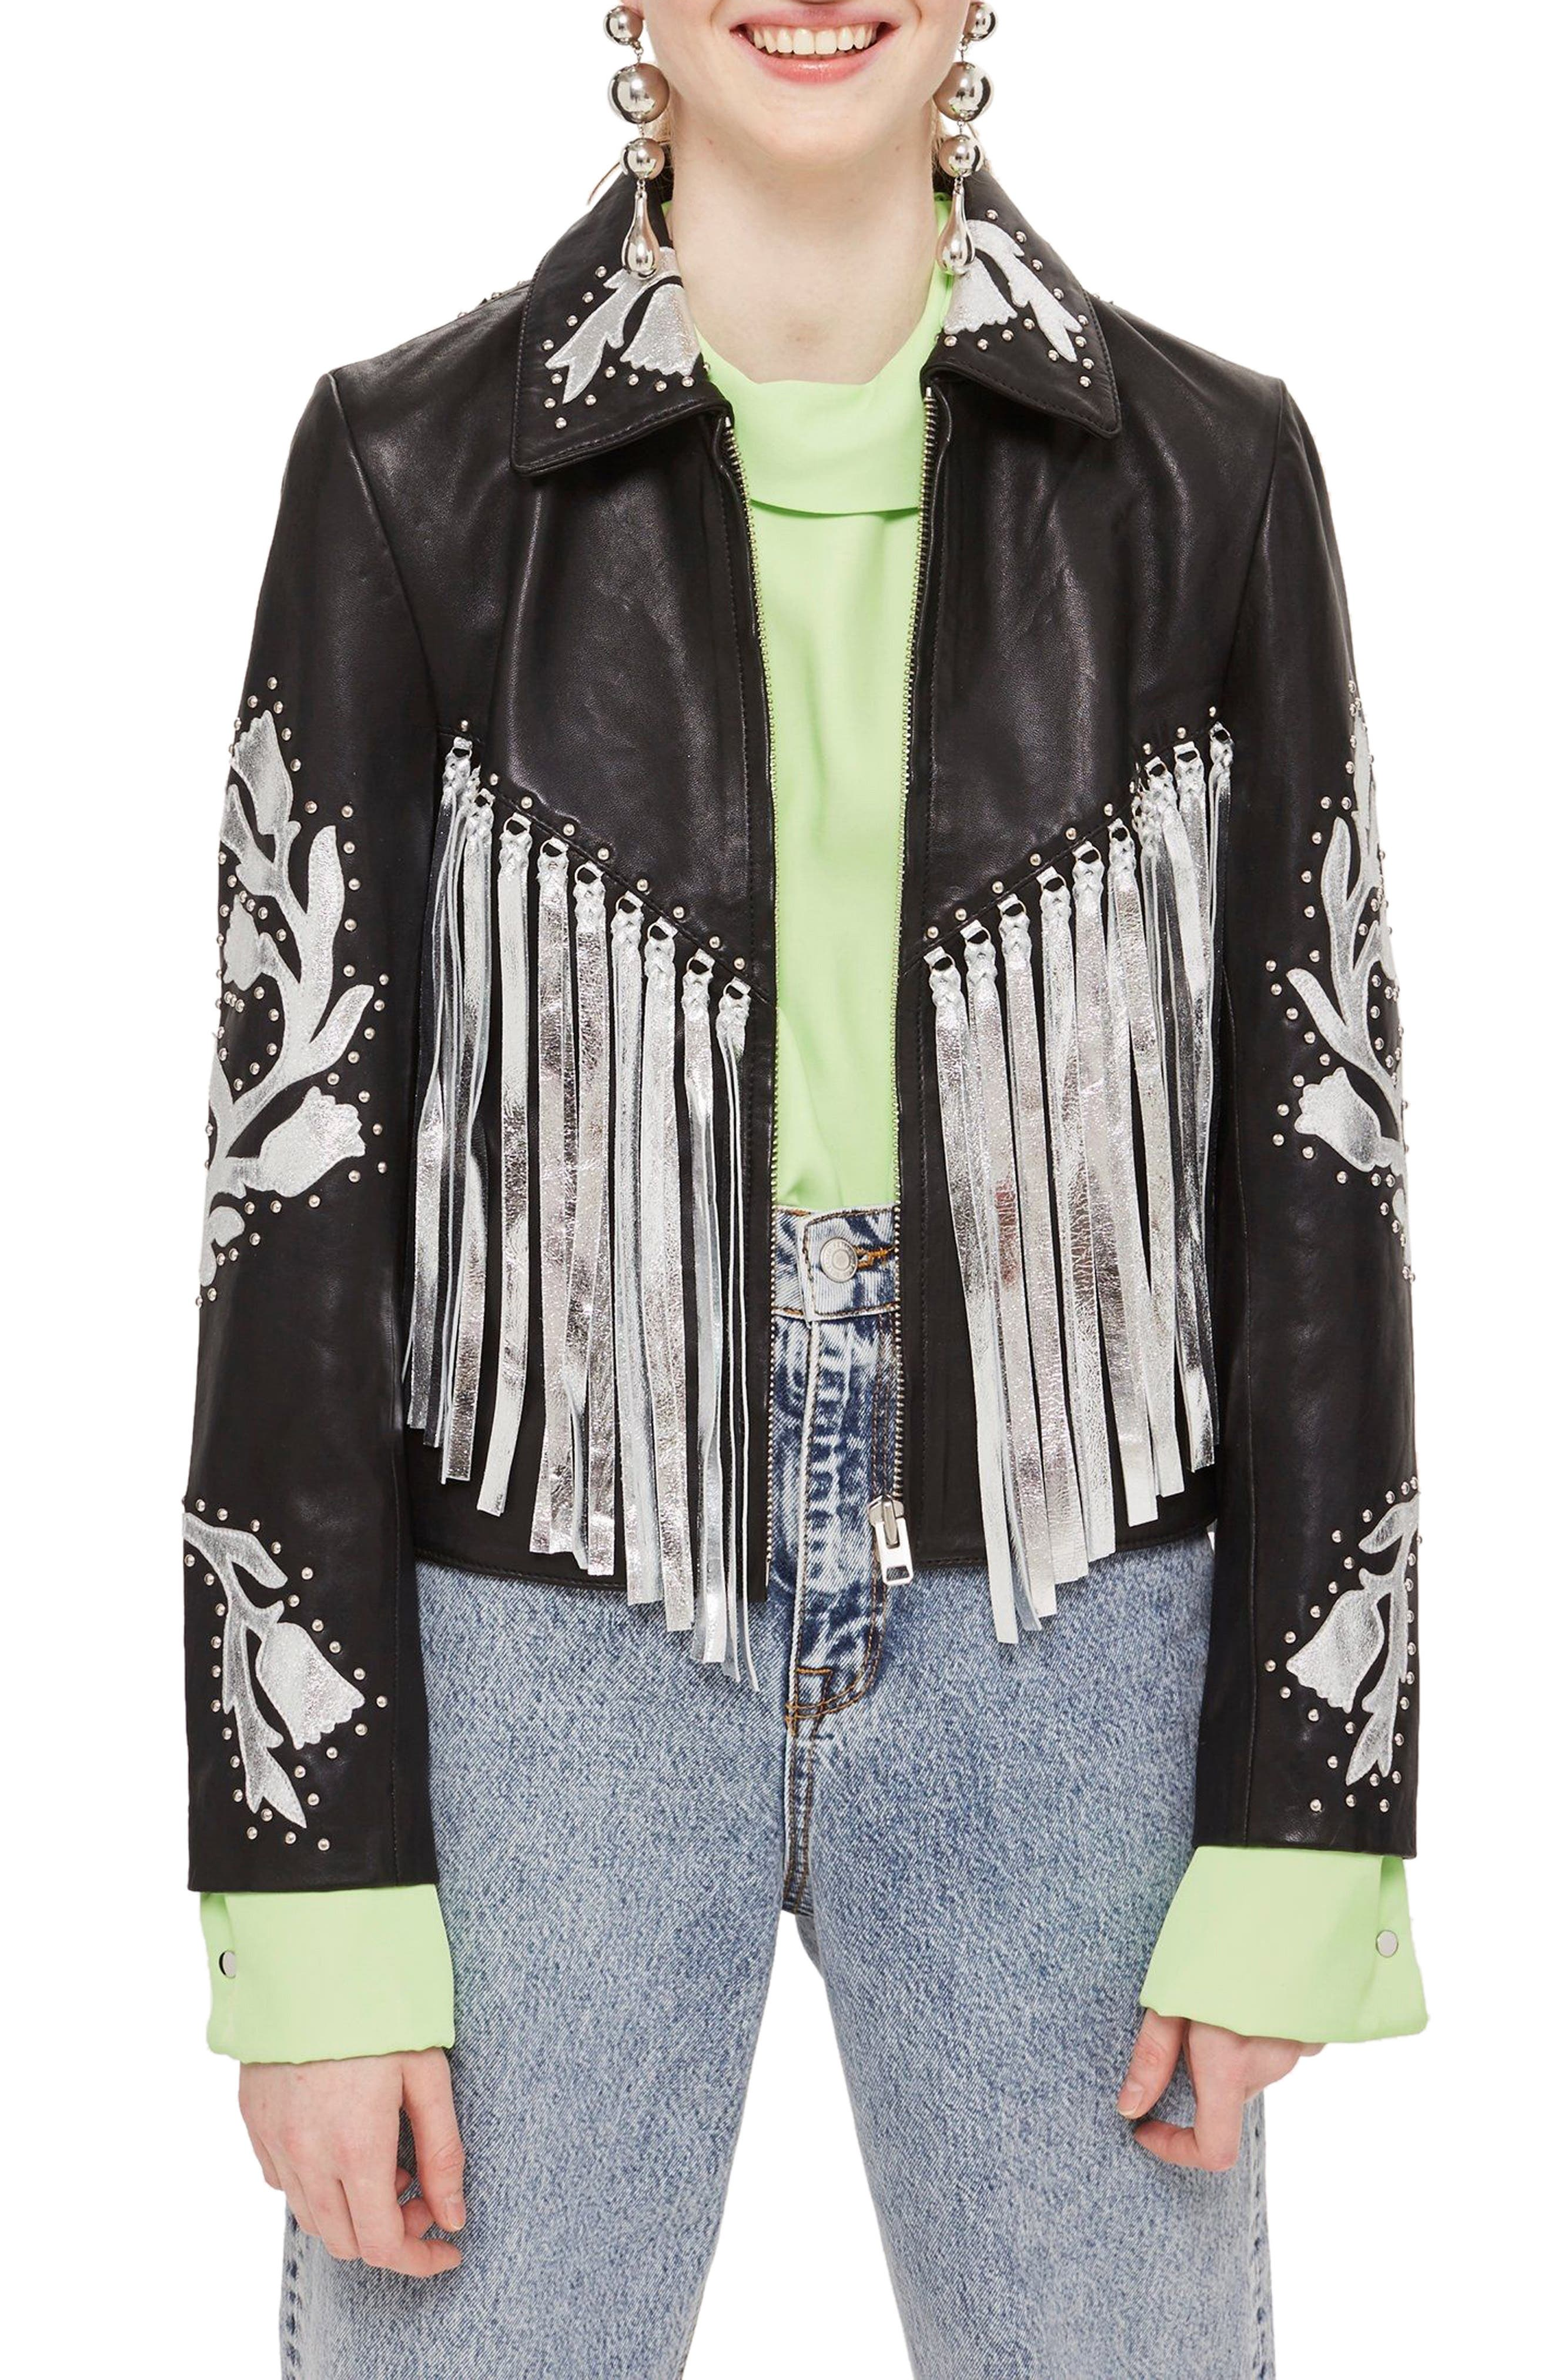 Austin Floral Silver Fringed Leather Jacket,                             Main thumbnail 1, color,                             Black Multi